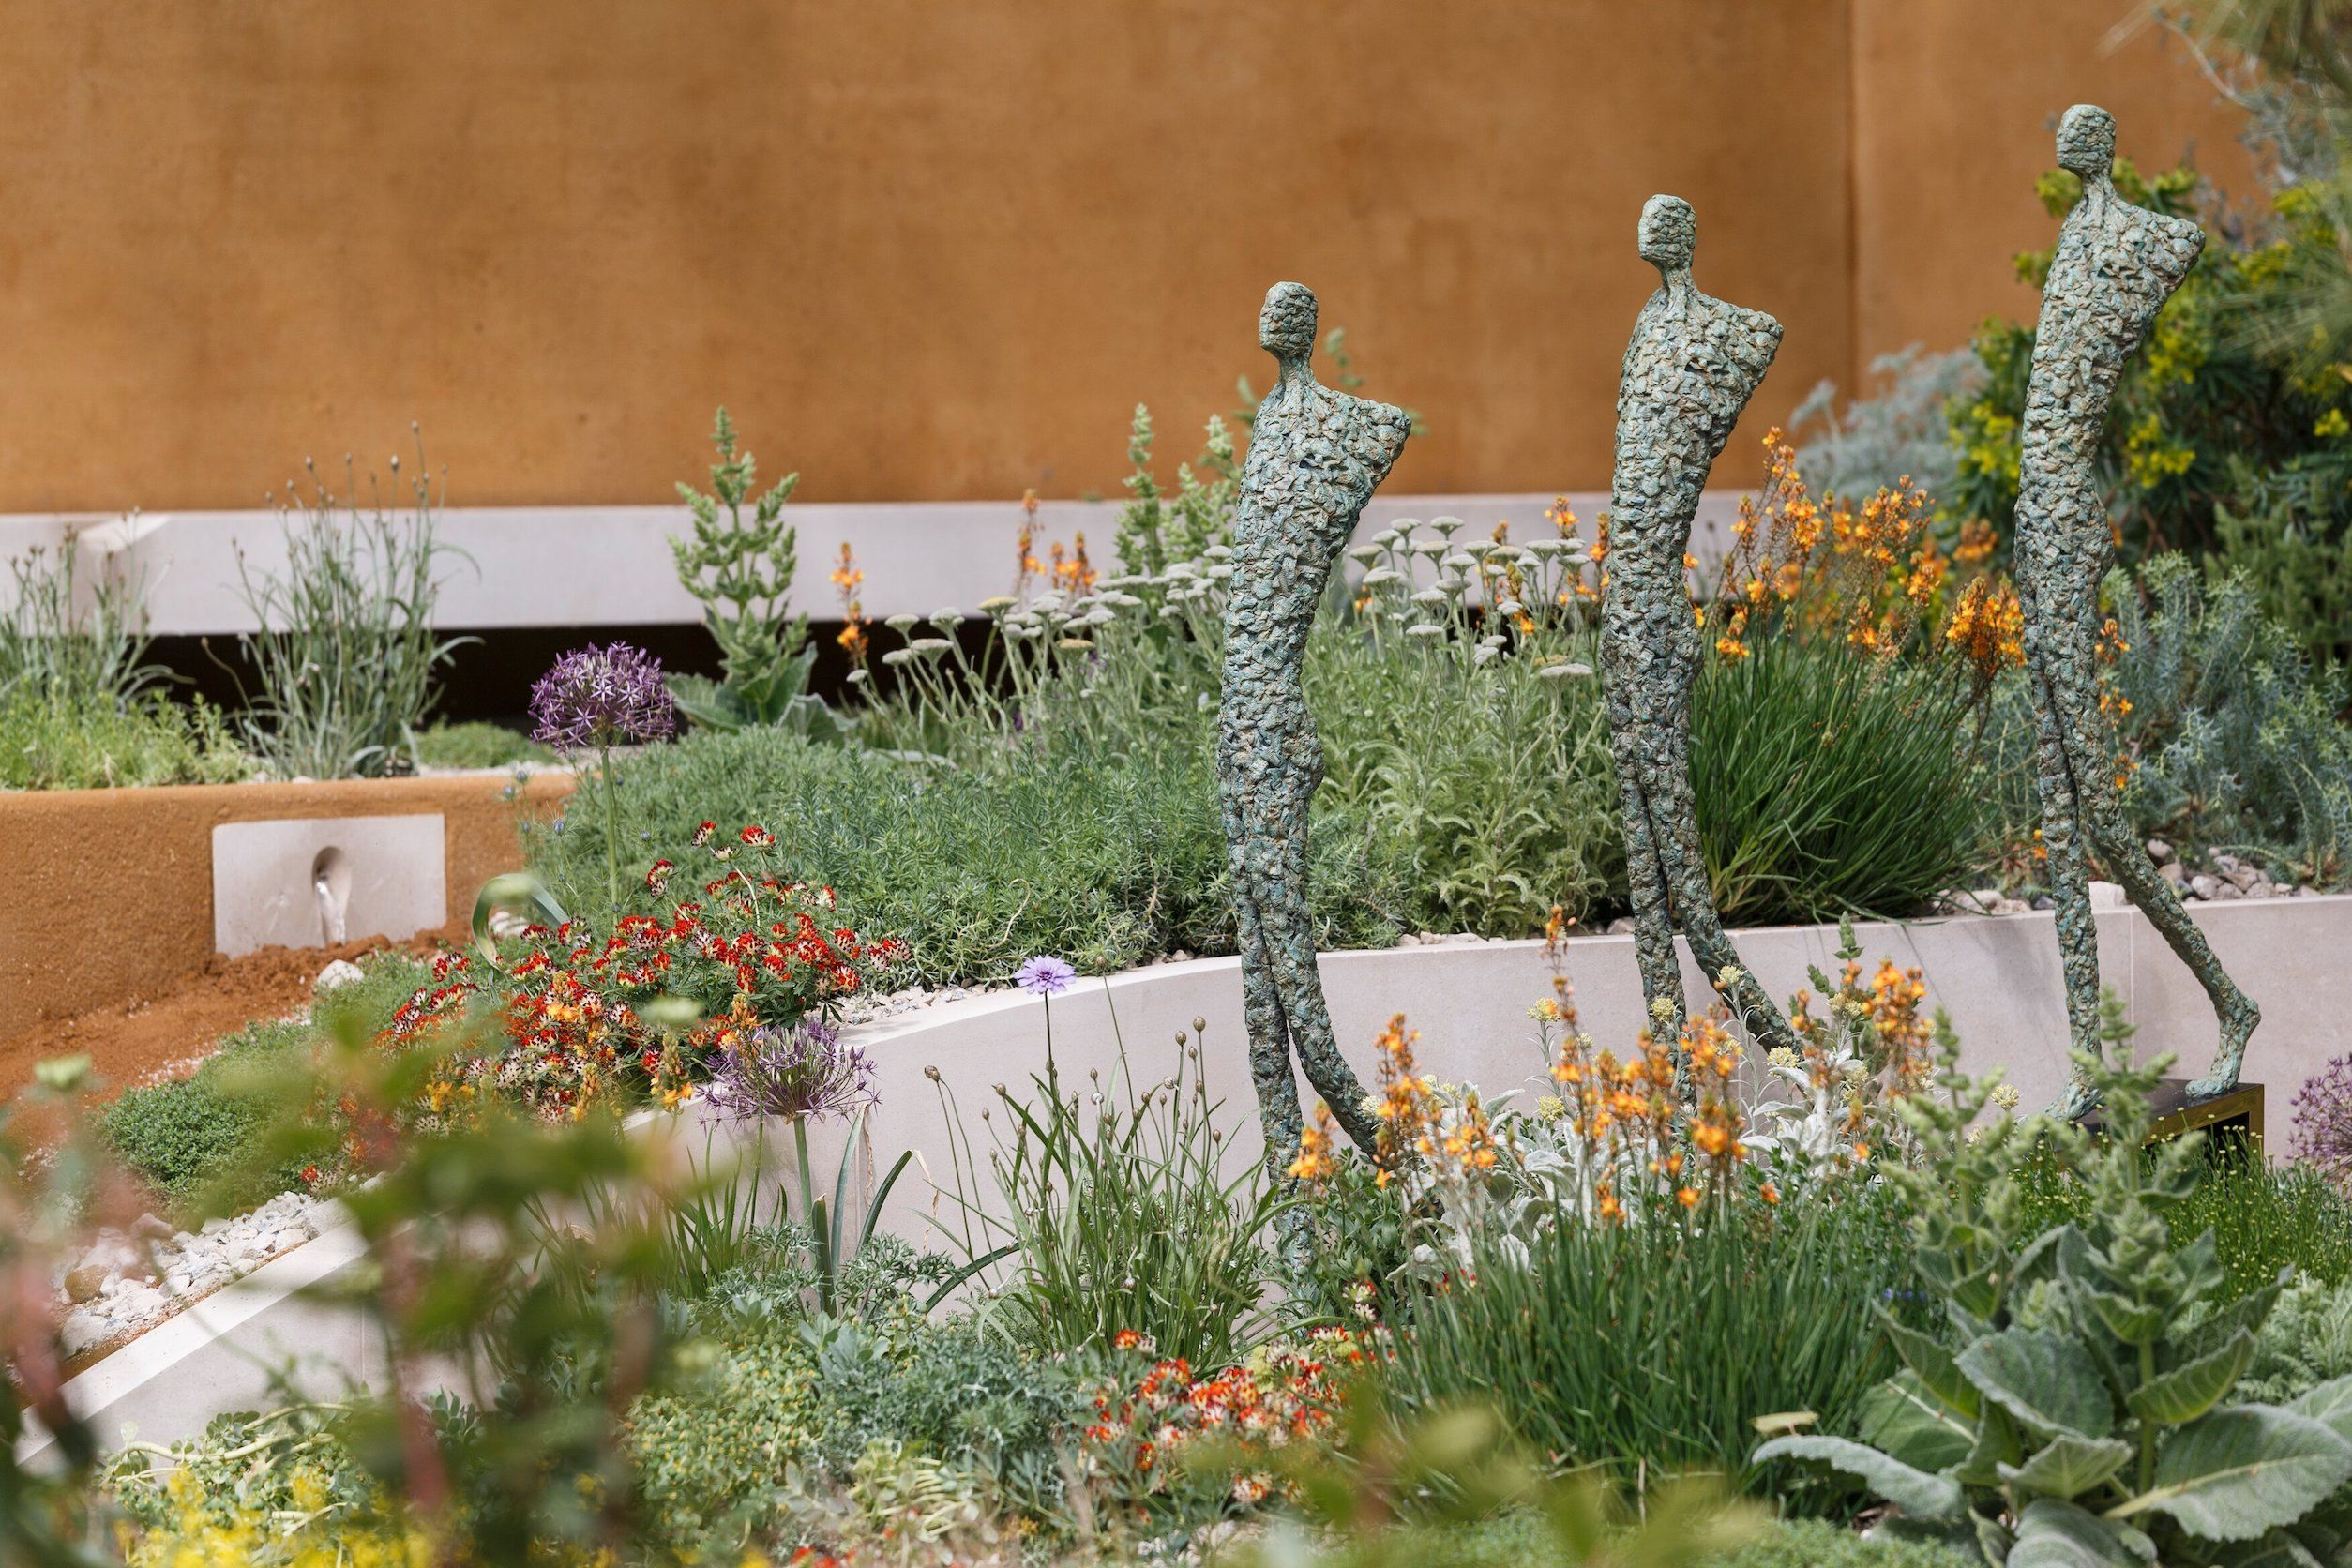 What happens to the Chelsea Flower Show gardens once the show is over?